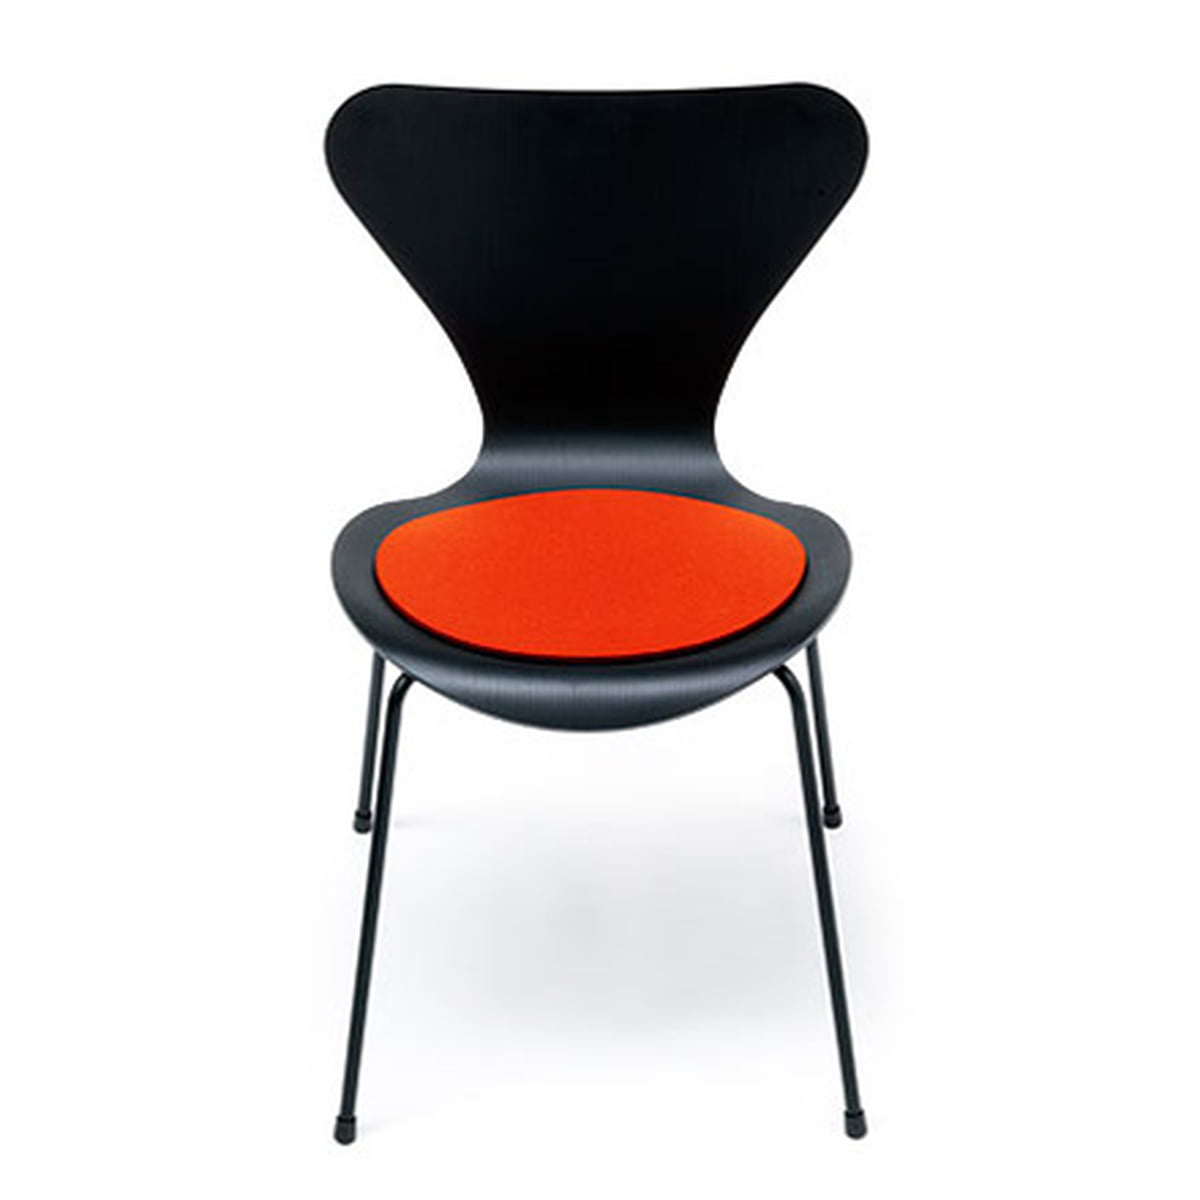 Jacobsen Series 7 Chair Hey Sign Felt Cushion For Jacobsen Series 7 Chair